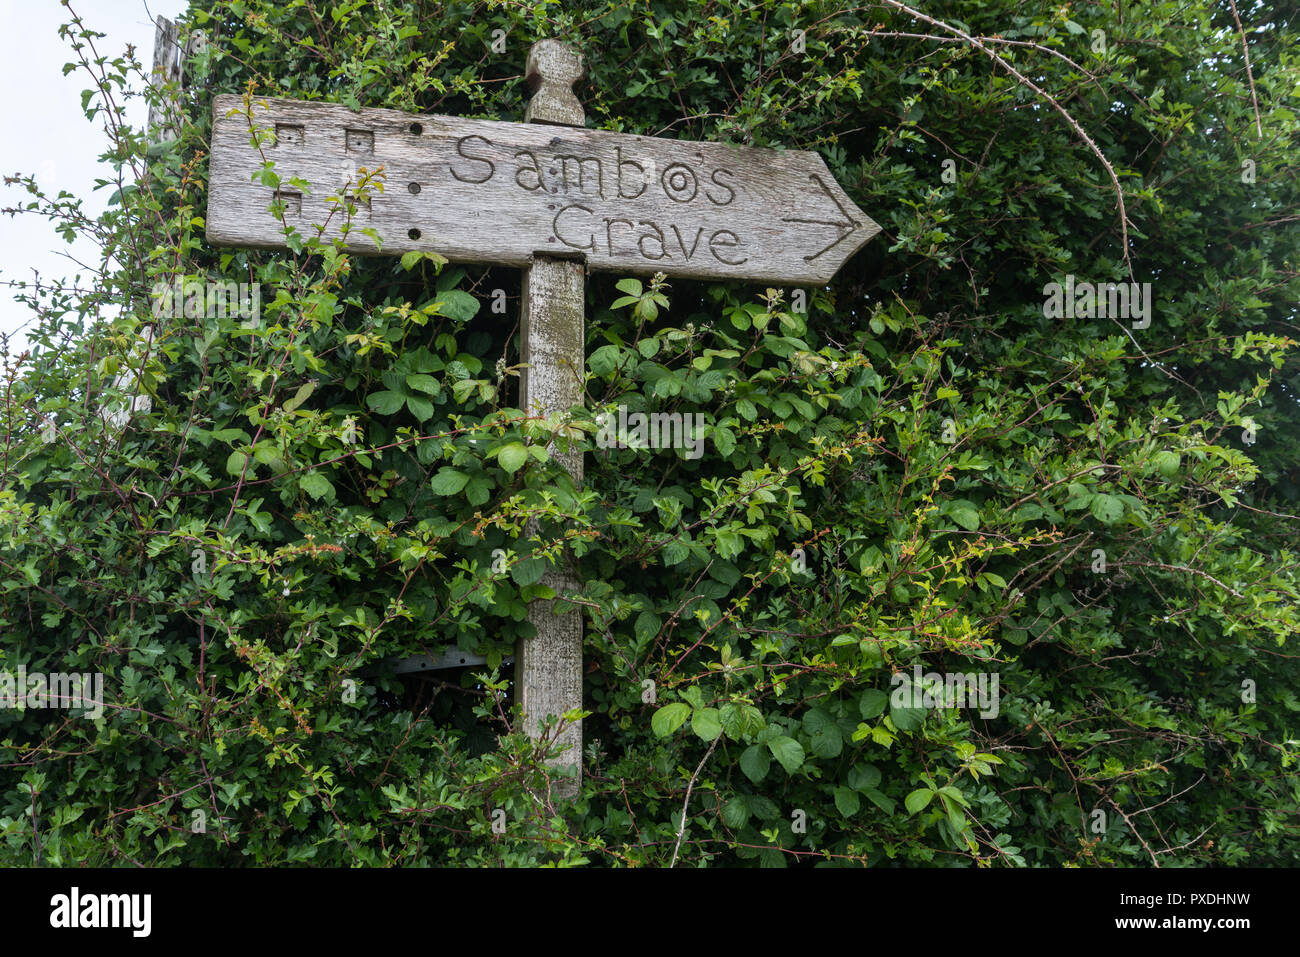 Direction sign to the grave of an 18th Century West Indian negro slave called Sambo at the remote Lancashire village of Sunderland Point, England, UK - Stock Image